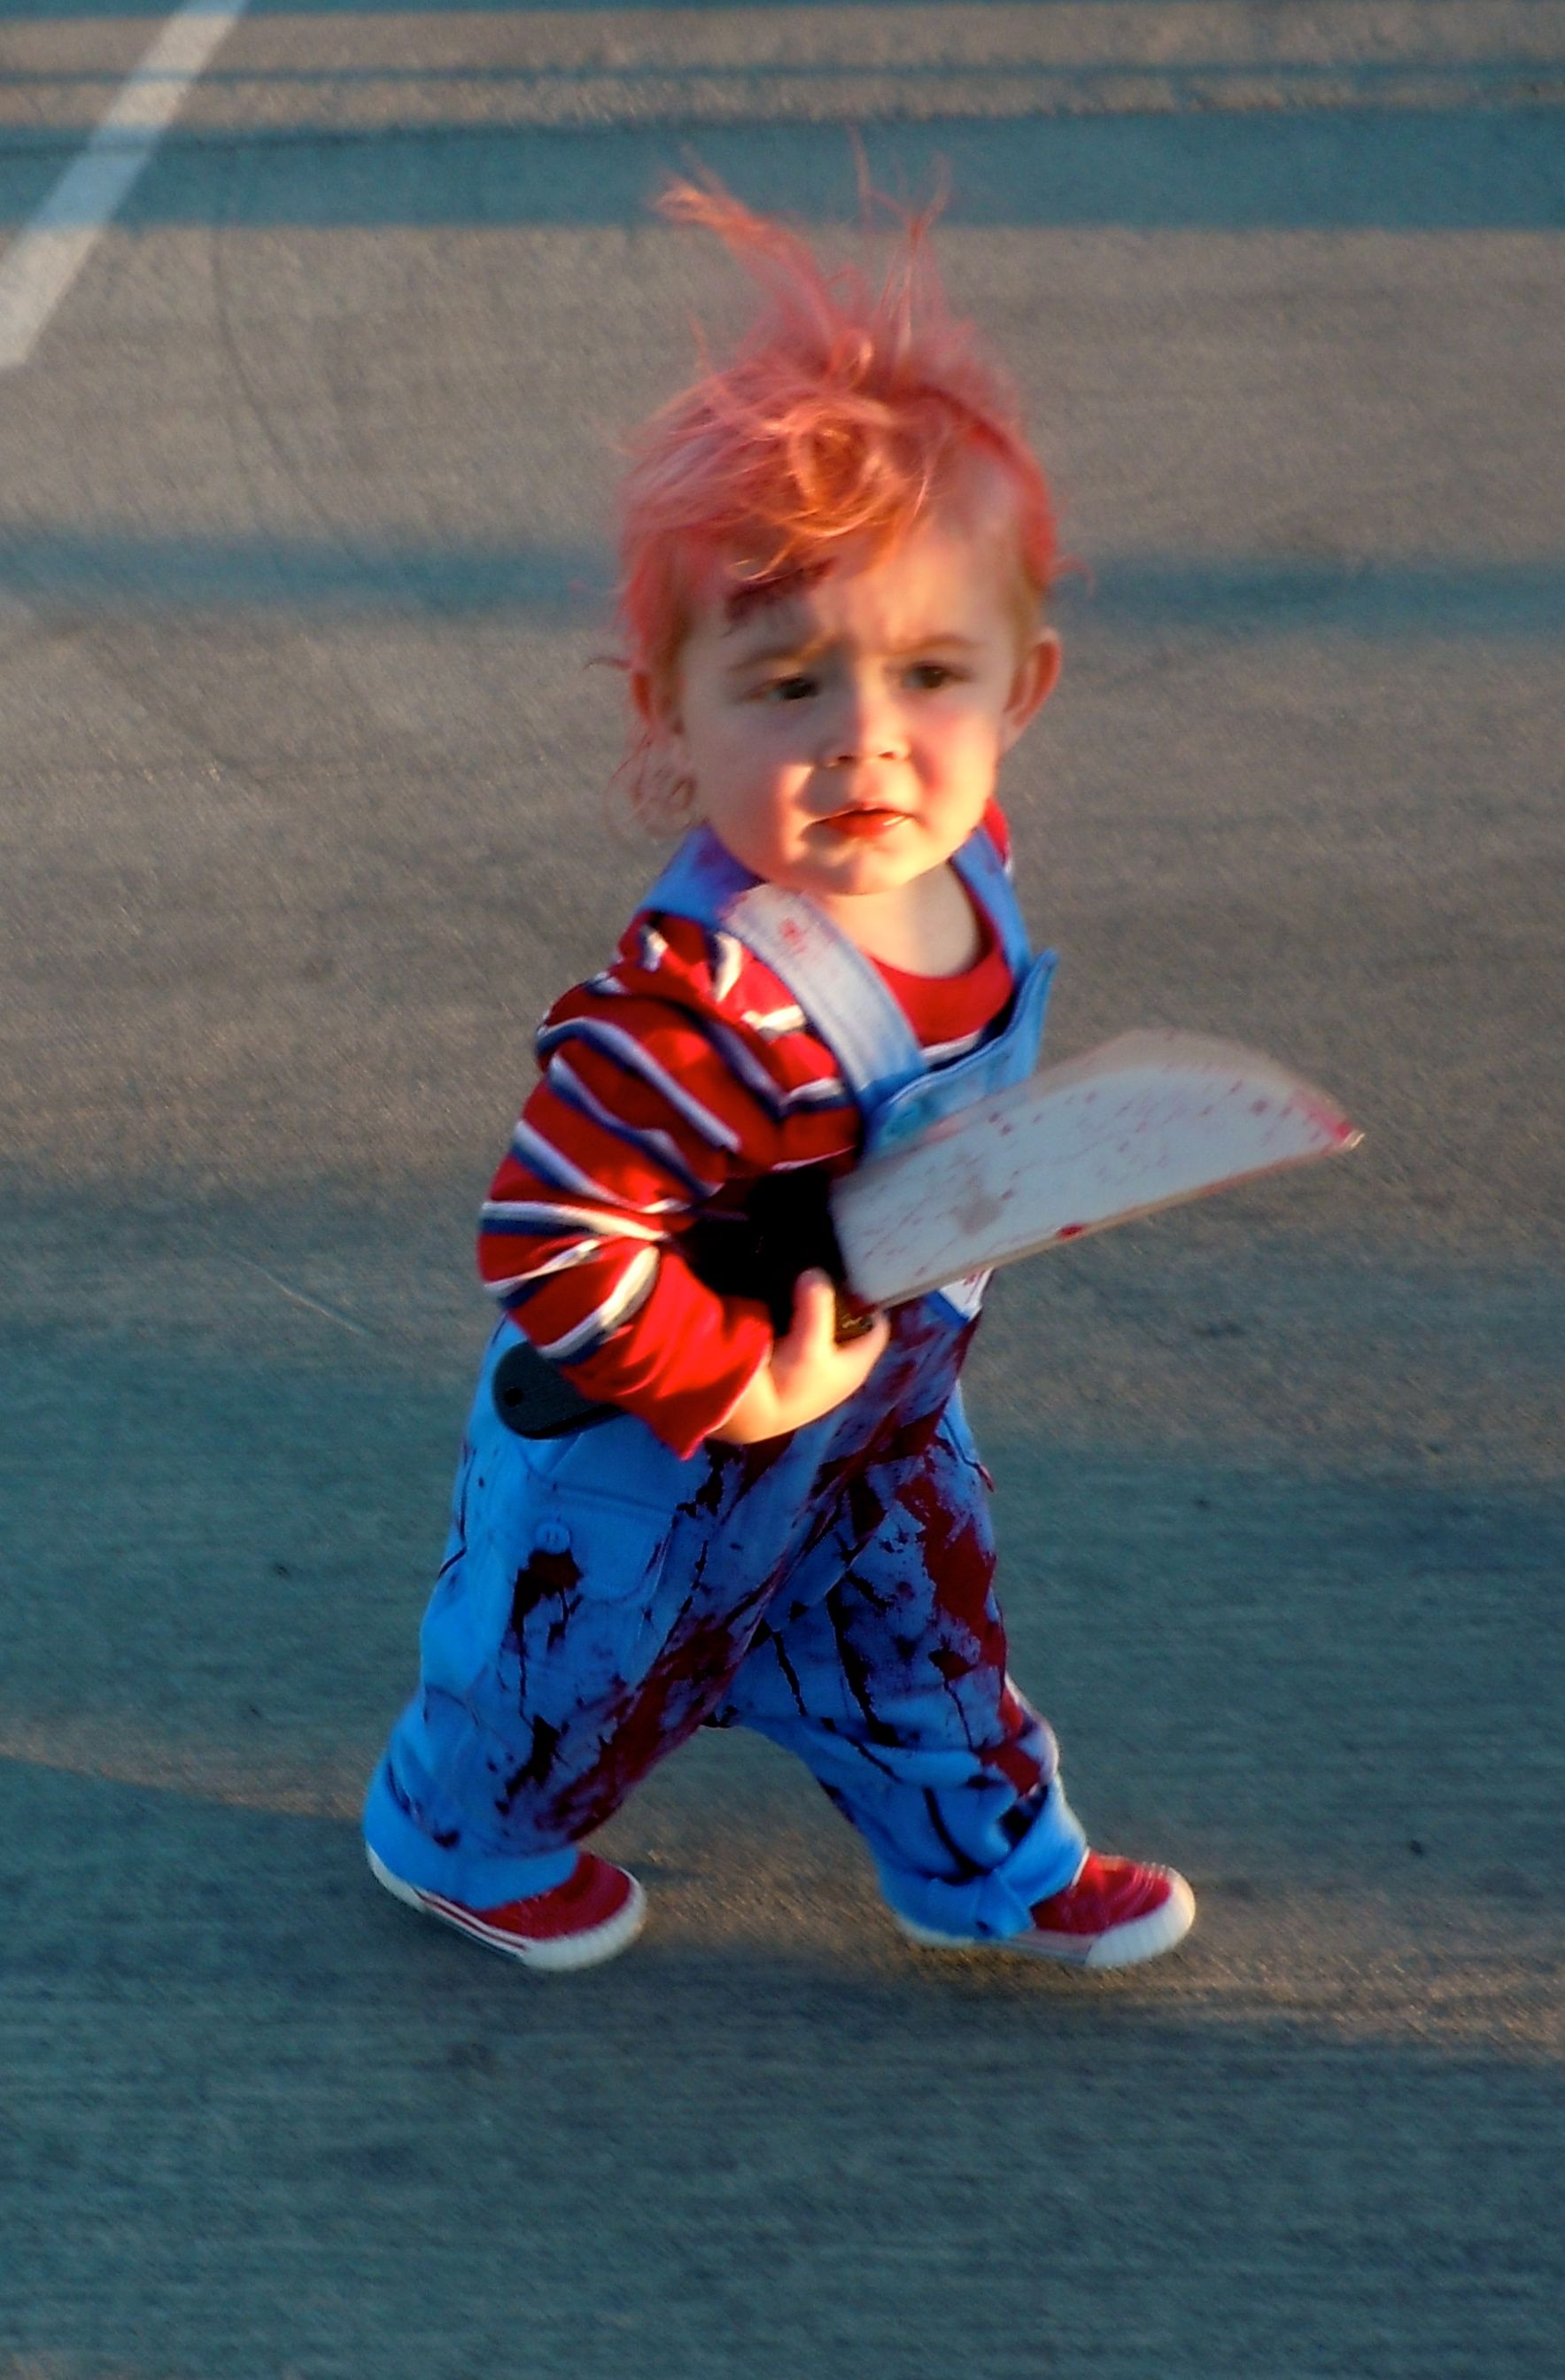 Scary little chucky kids halloween costume kids for Cool halloween costumes for kids girls